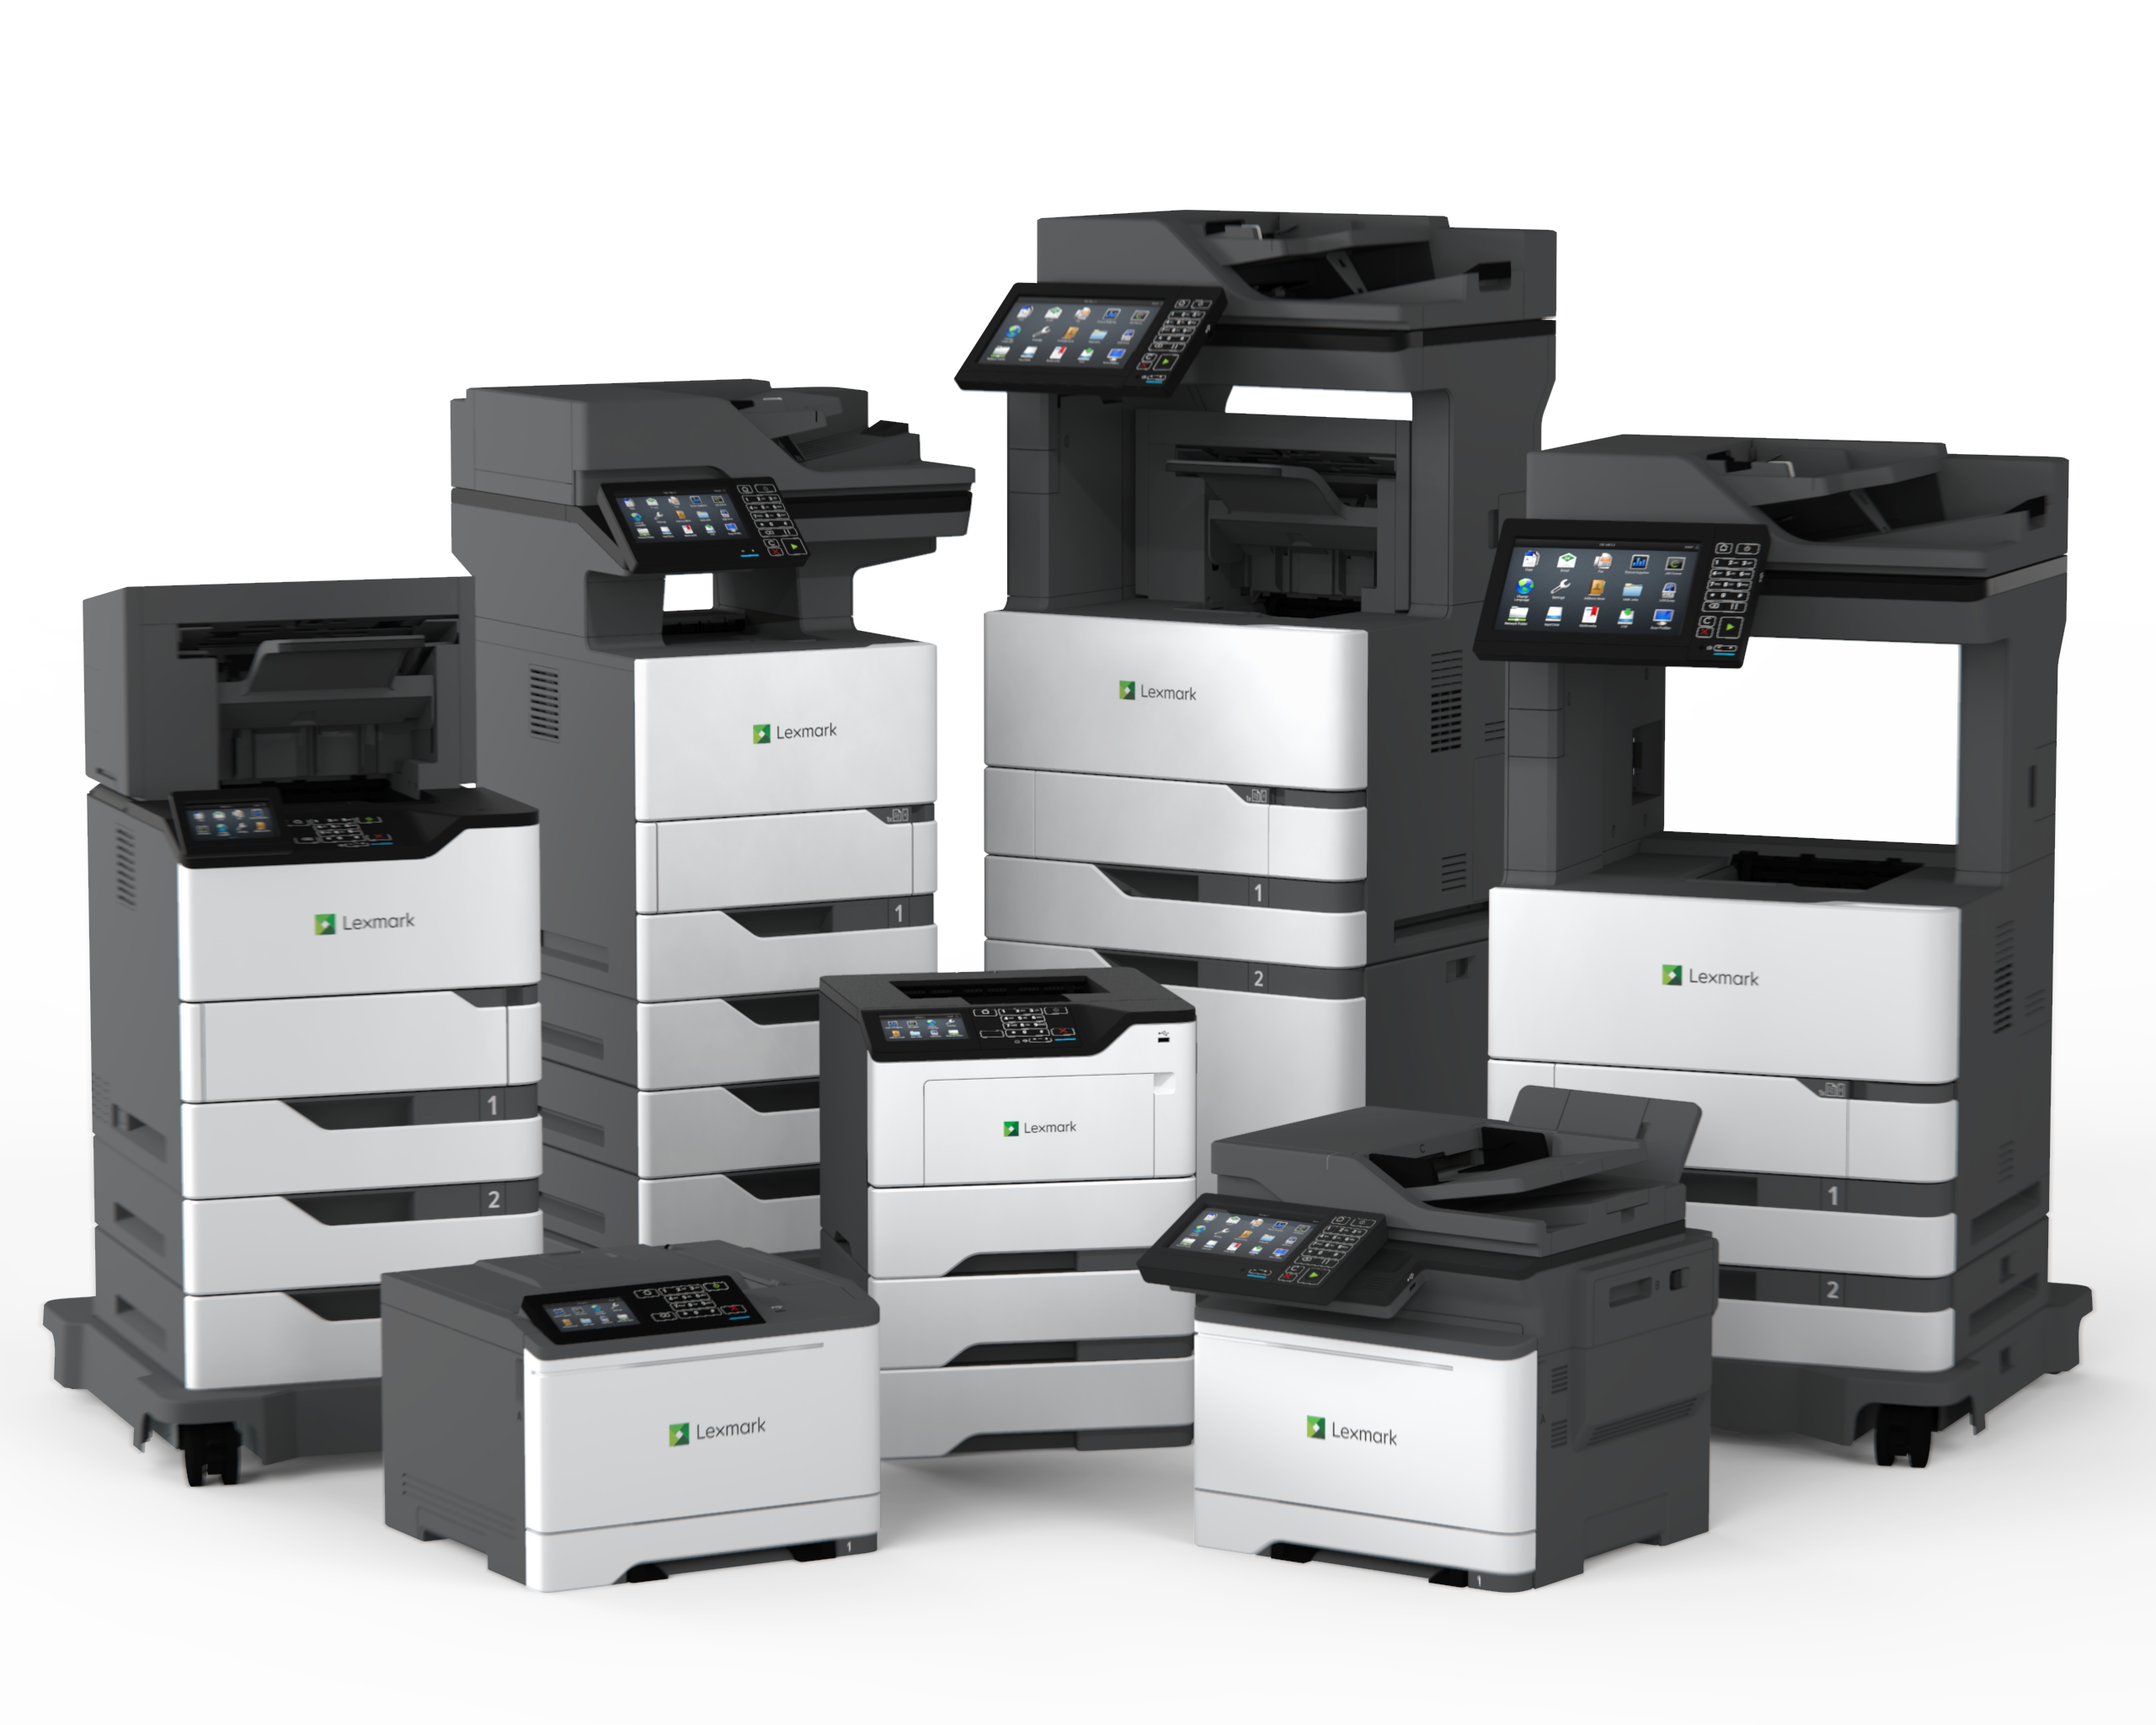 Group printer image for 2019 BLI Line of the Year